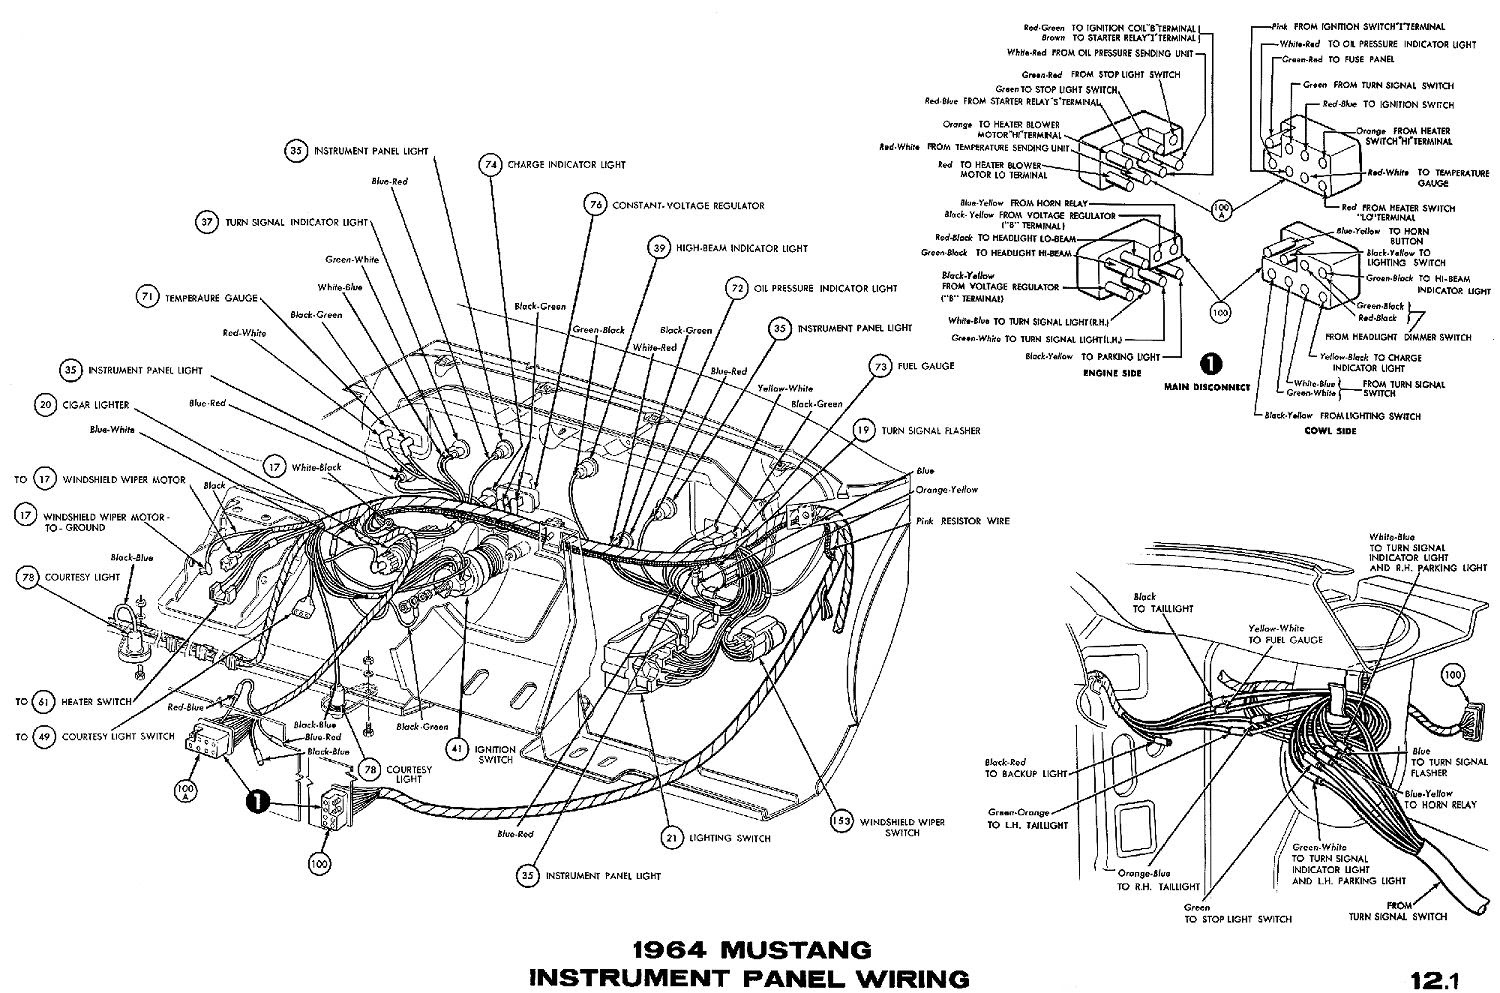 1965 Mustang Instrument Panel Wiring Diagram Wiring Diagram Correction Correction Cfcarsnoleggio It